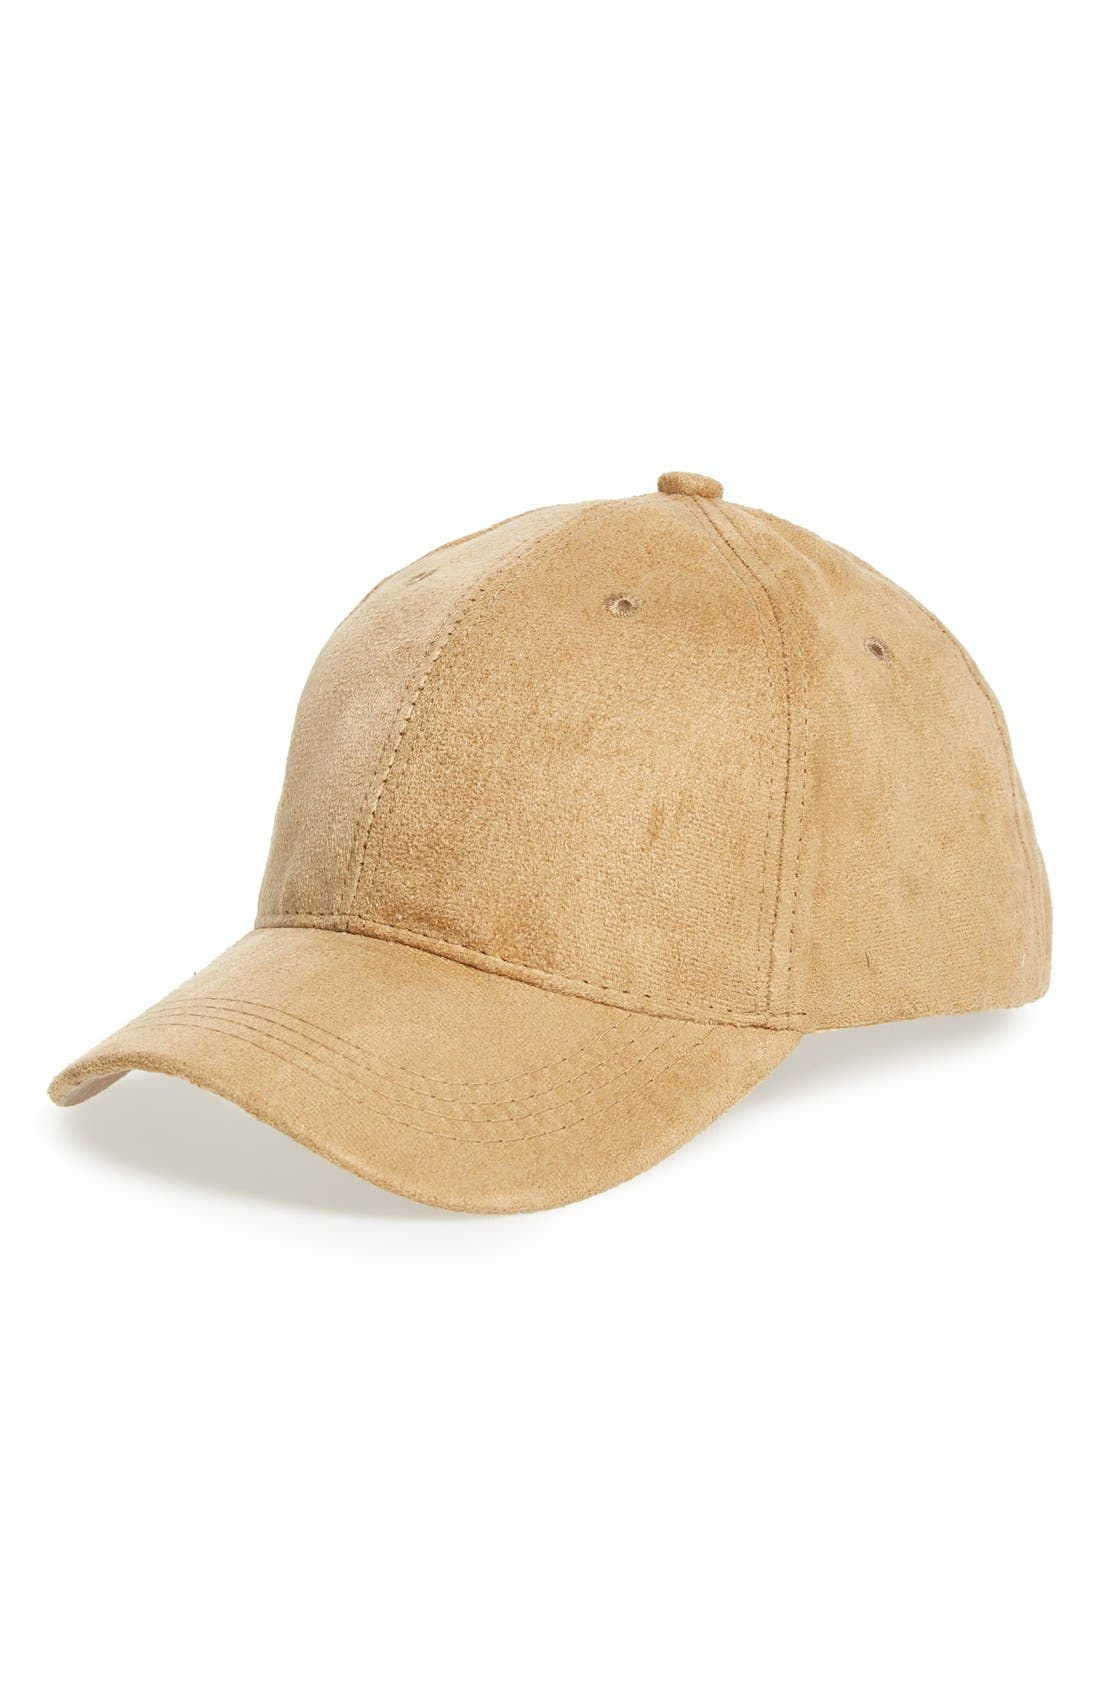 Faux Suede Ball Cap,                             Main thumbnail 1, color,                             Tan